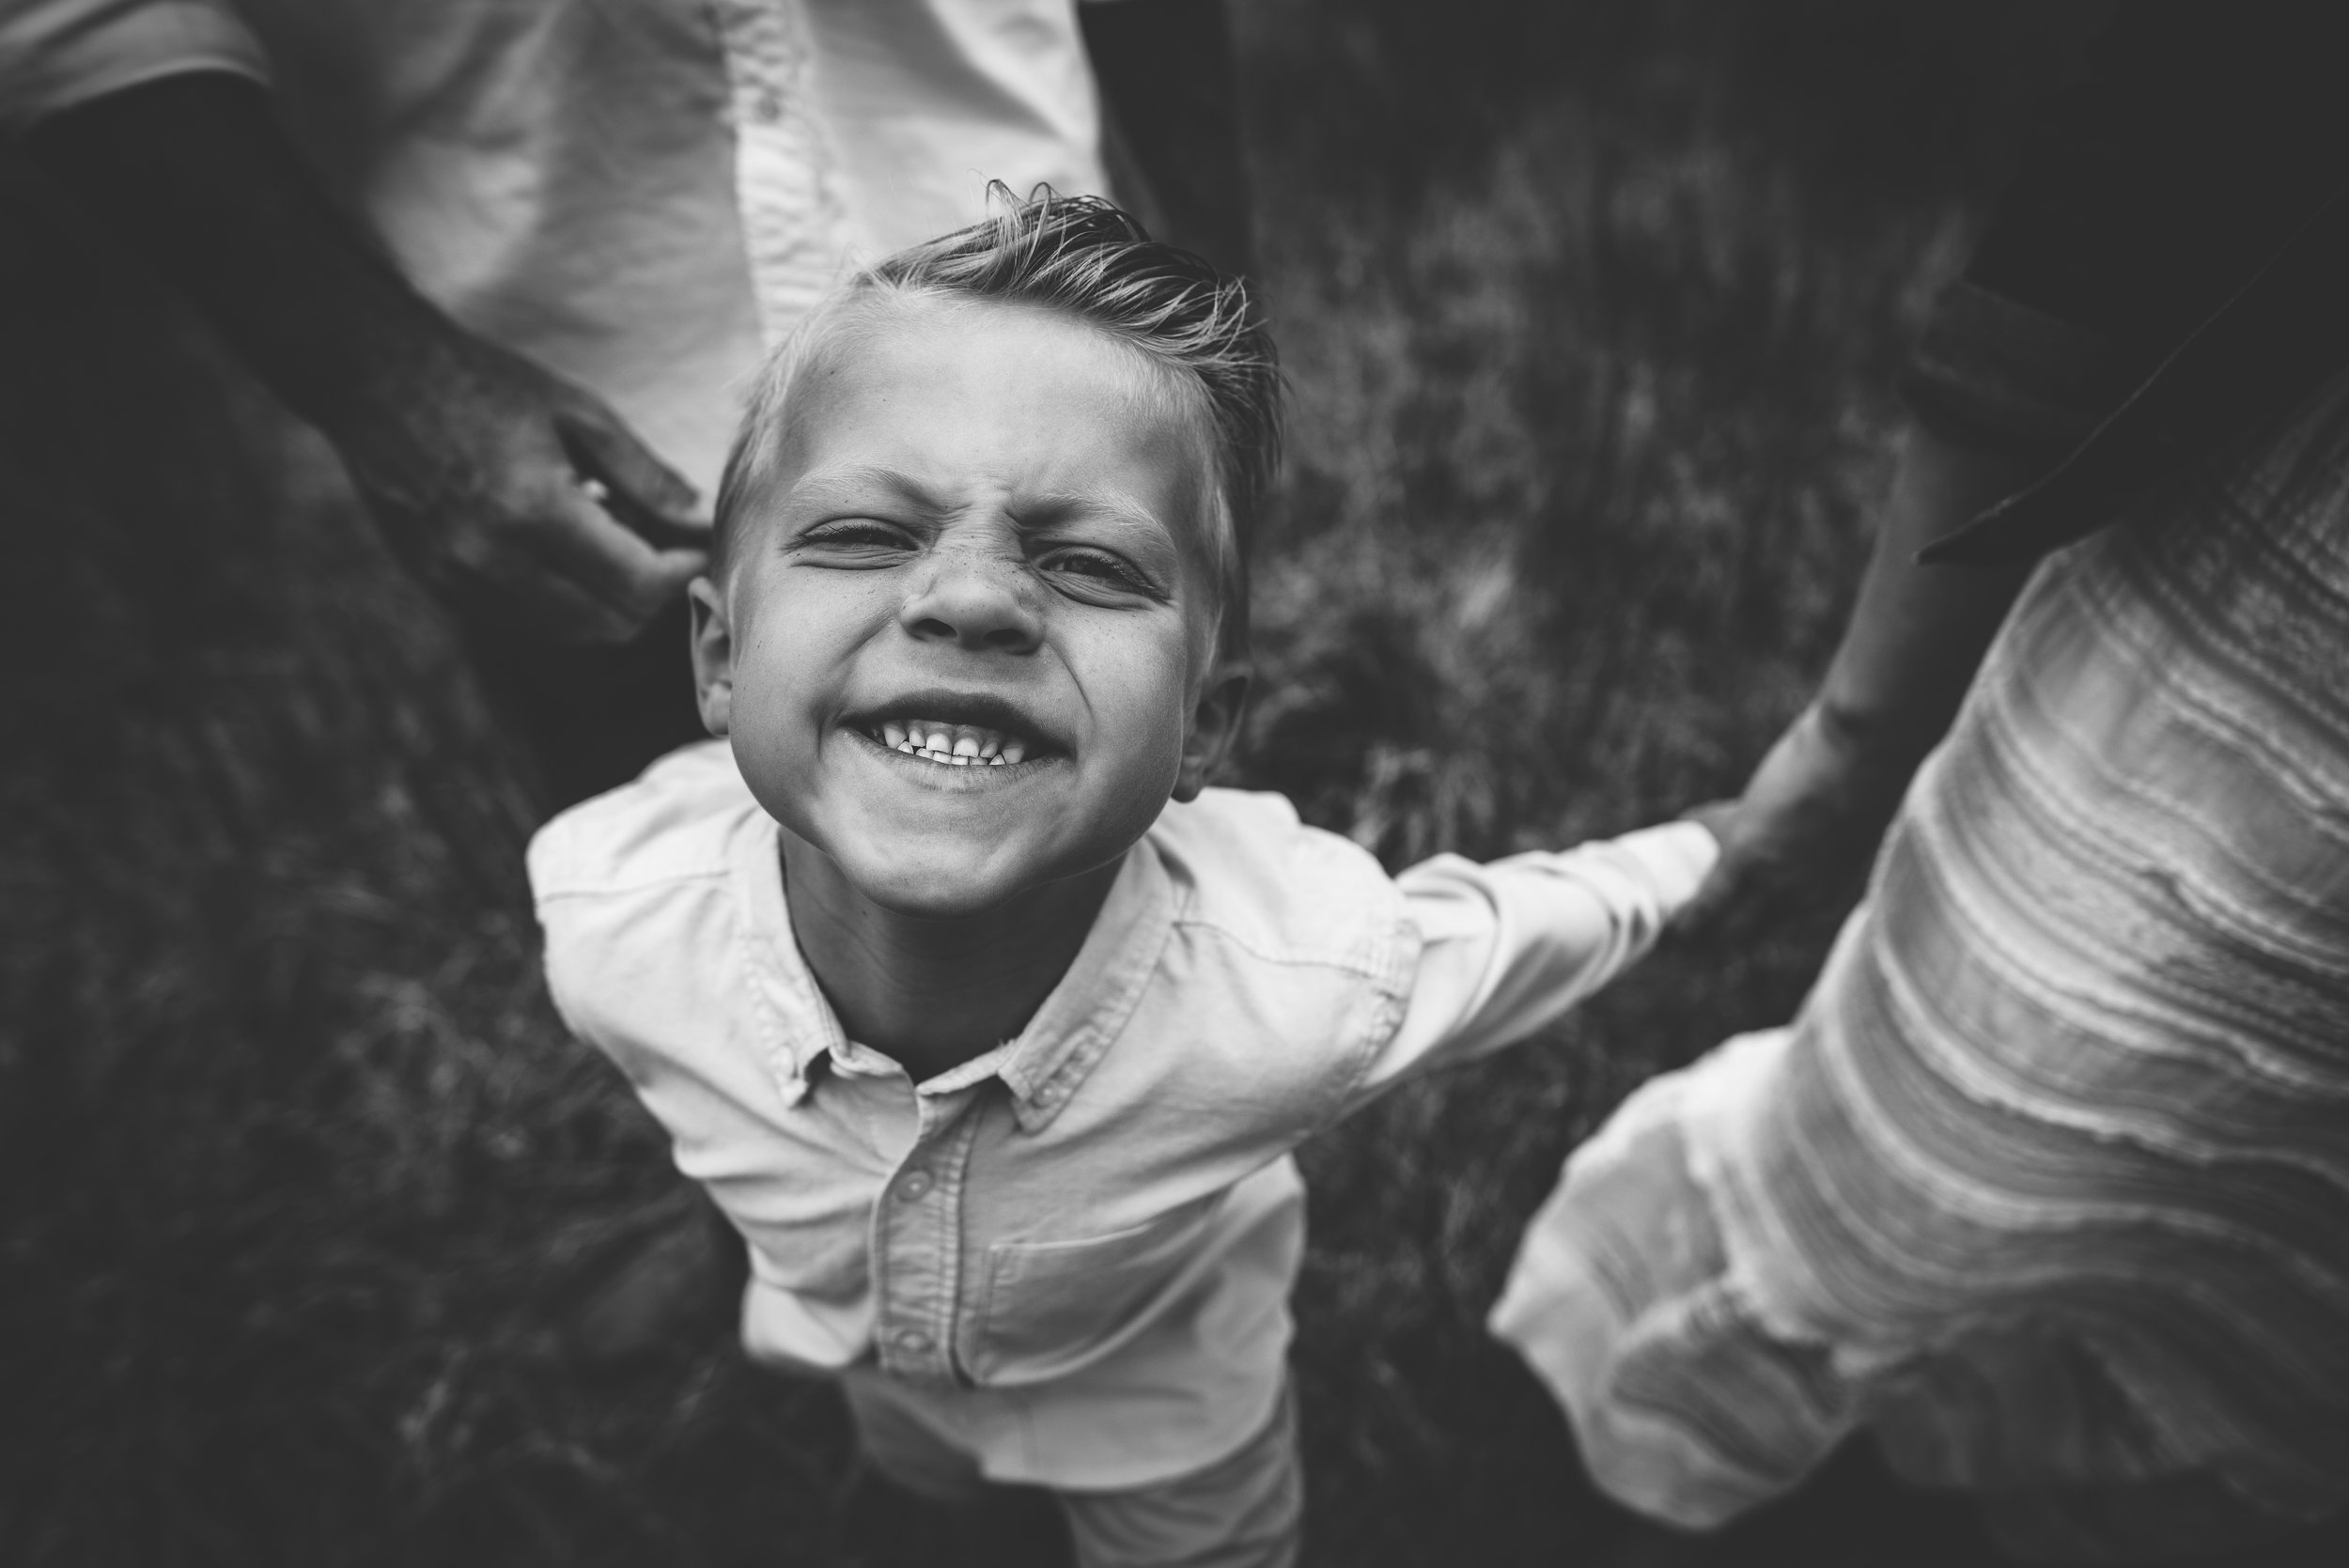 Little boy makes a silly face with his family in Colorado Springs during family photo session.